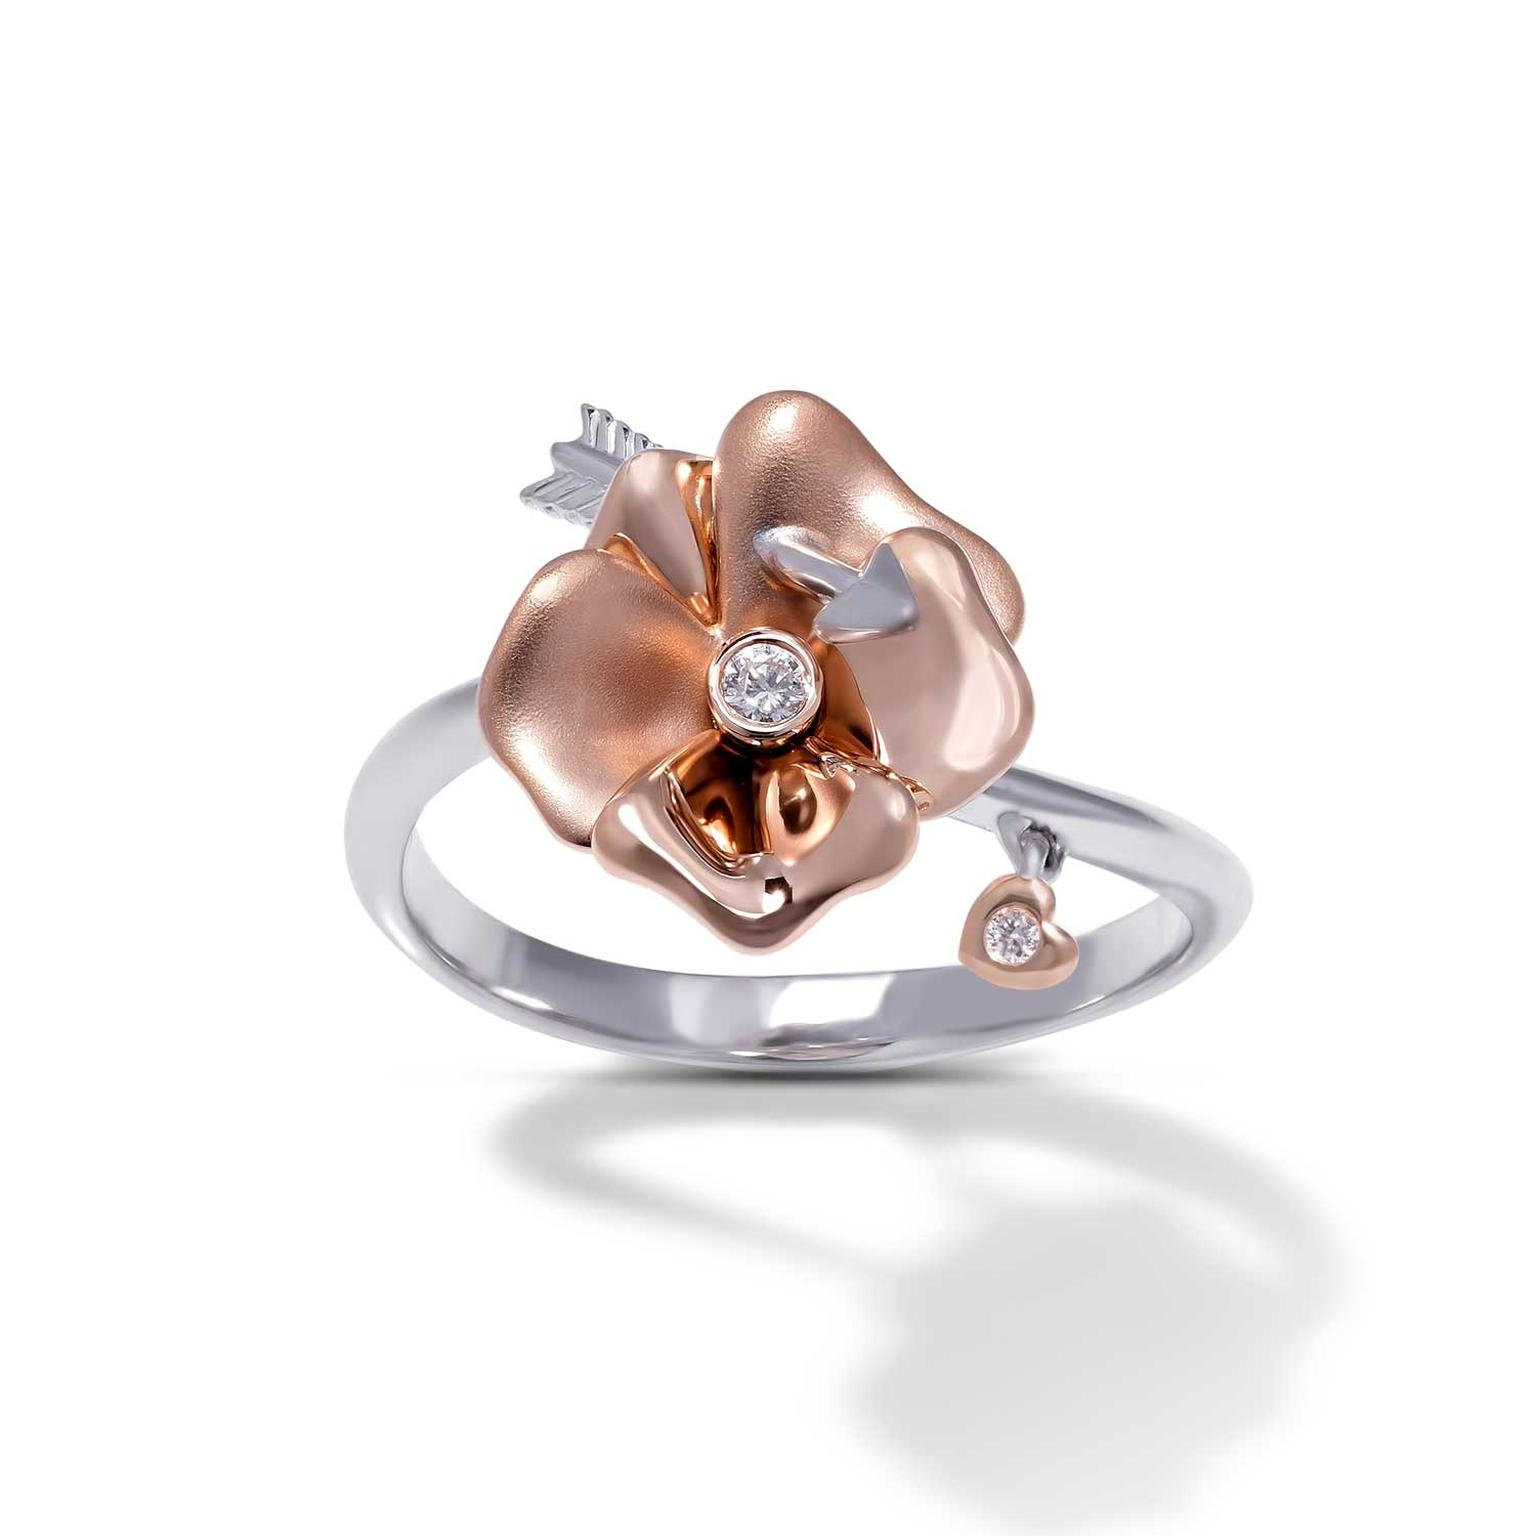 Stenzhorn Cupid's Potion rose gold and diamond ring